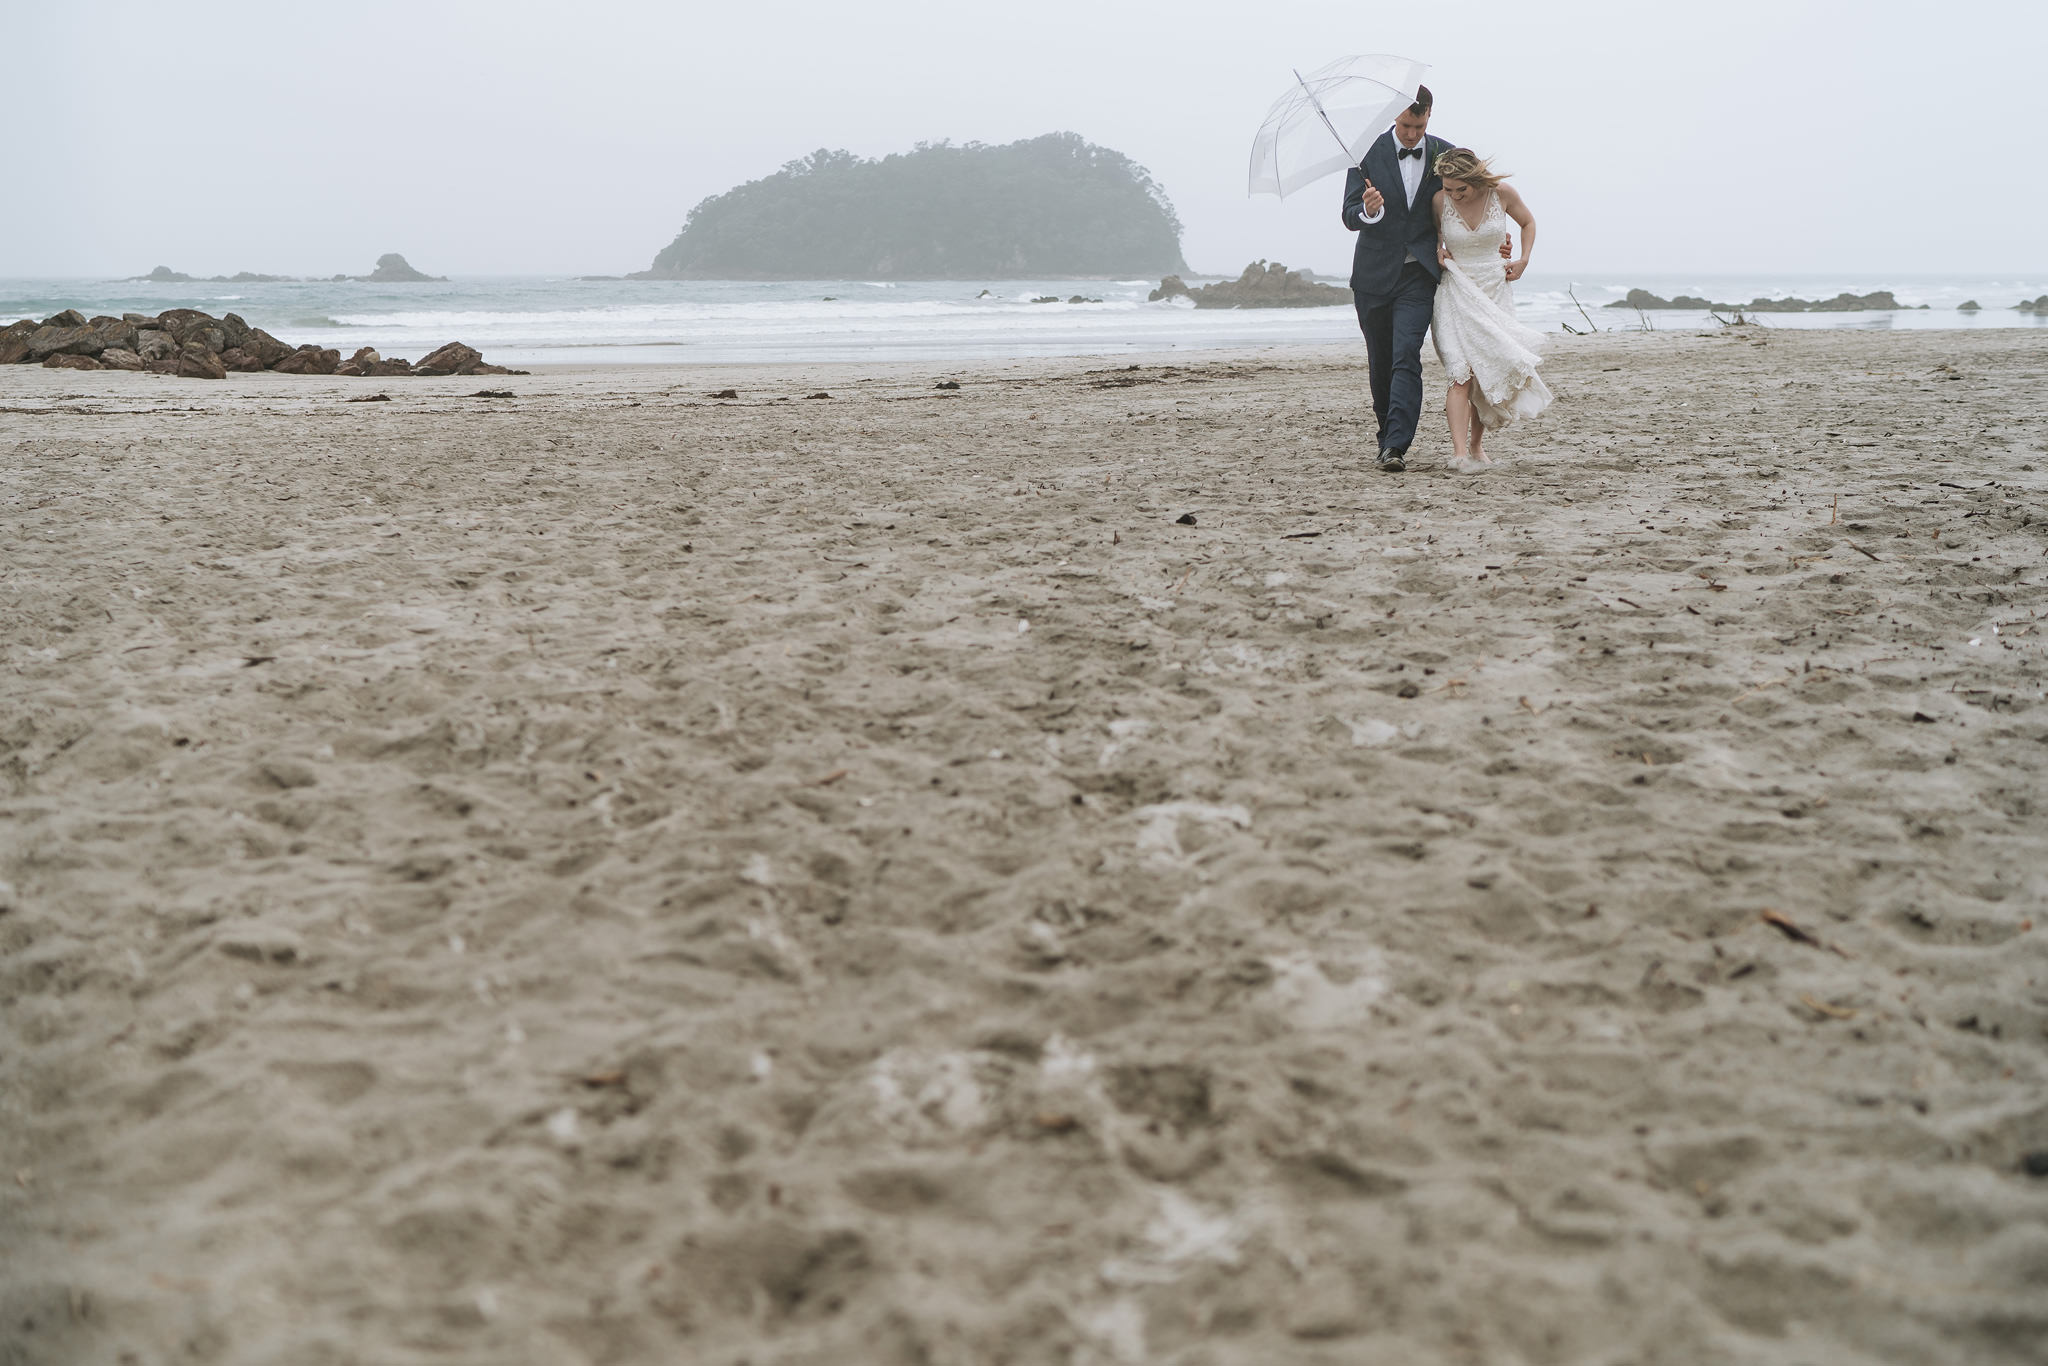 newfound-s-a-tauranga-new-zealand-wedding-photography-339